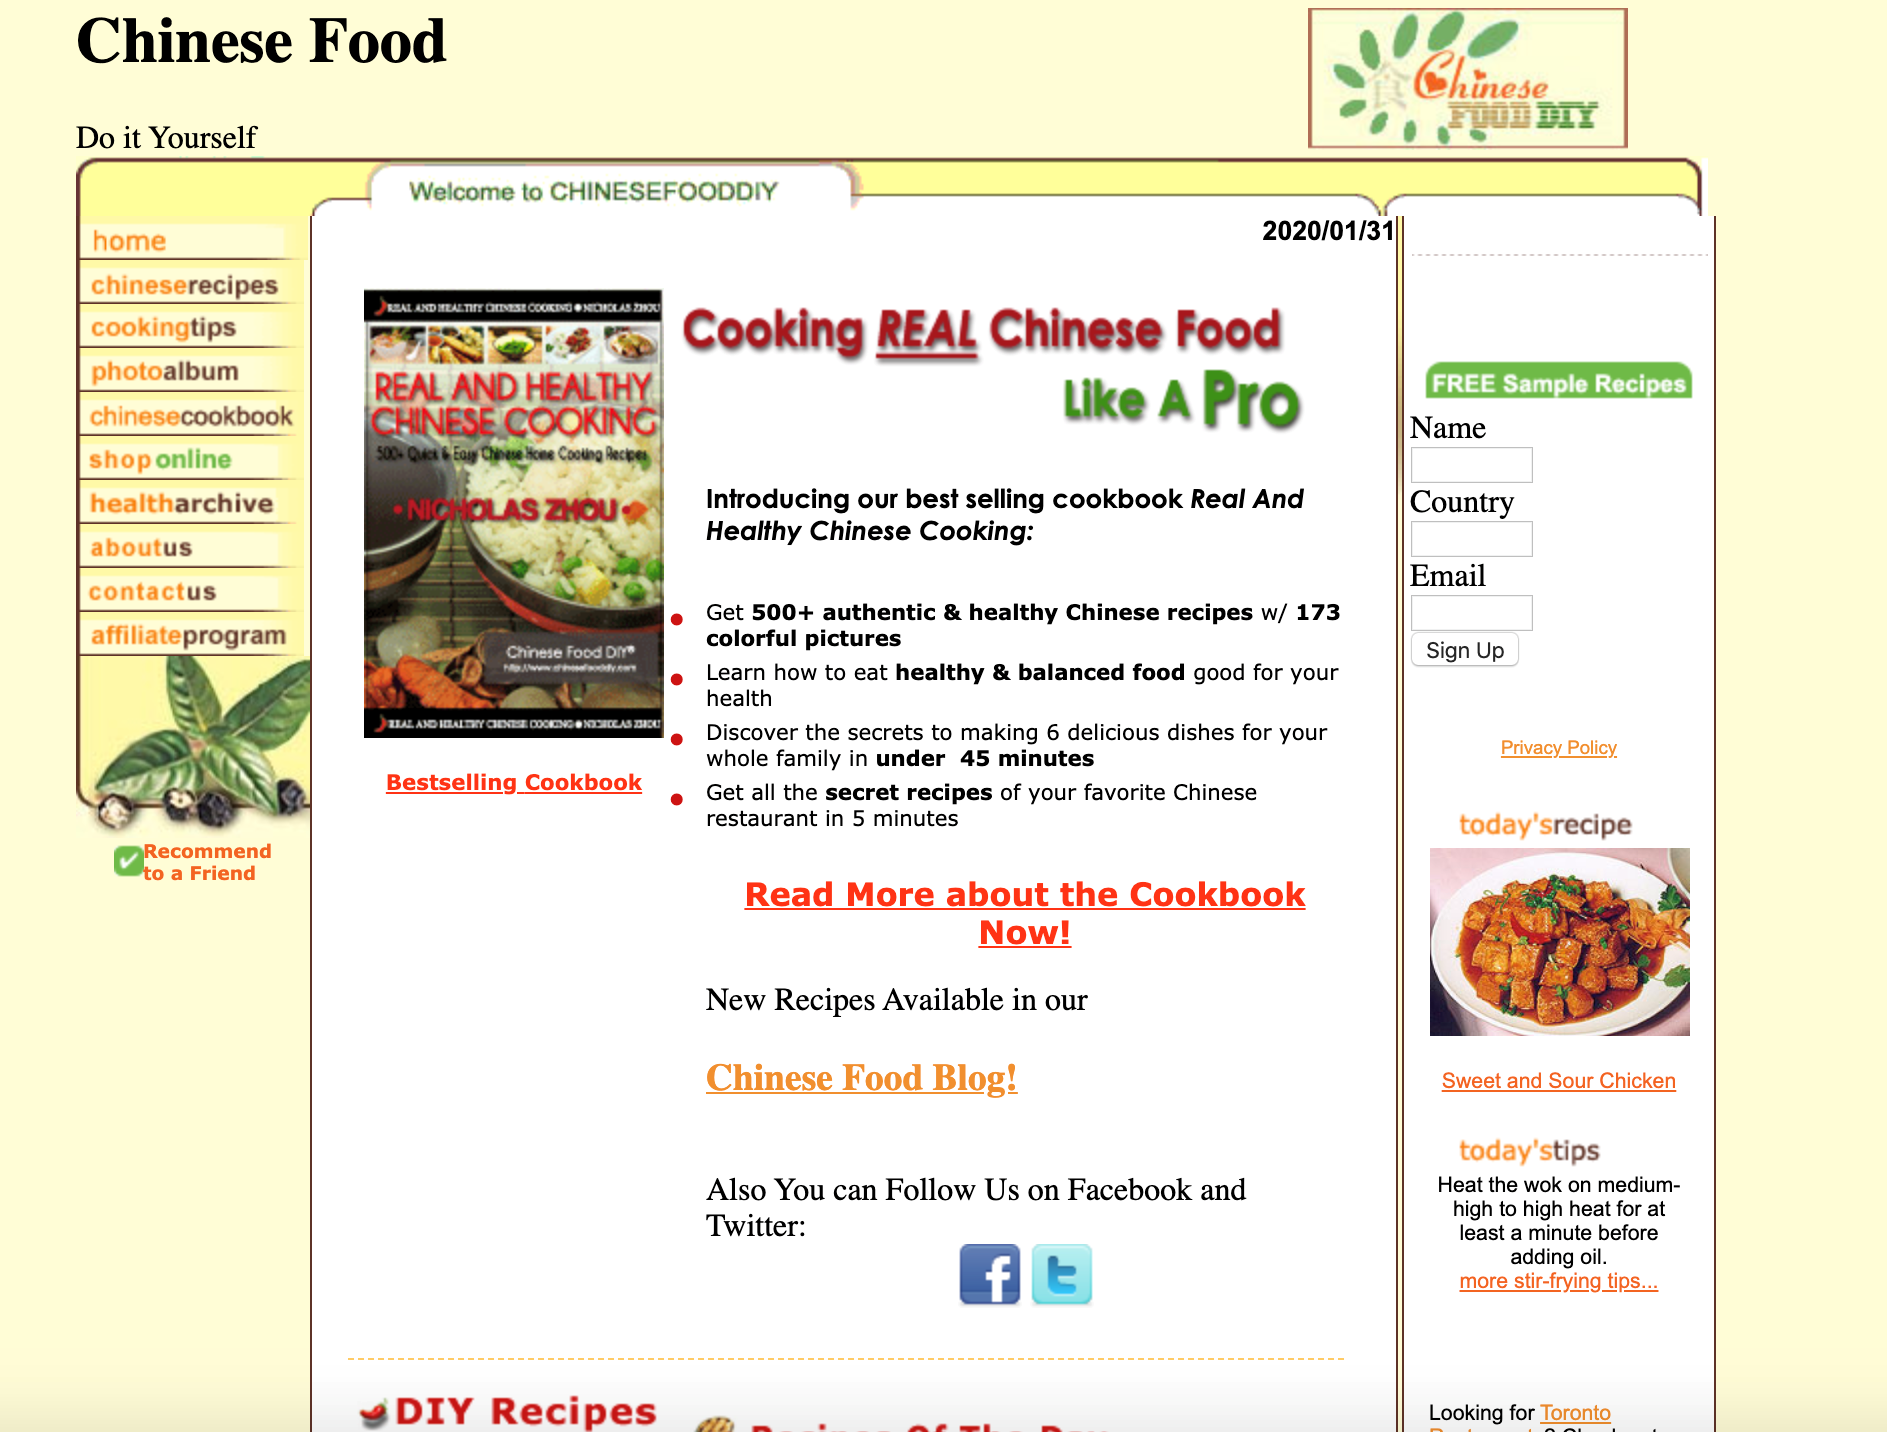 Screenshot of a webpage showing a Chinese cookbook description.